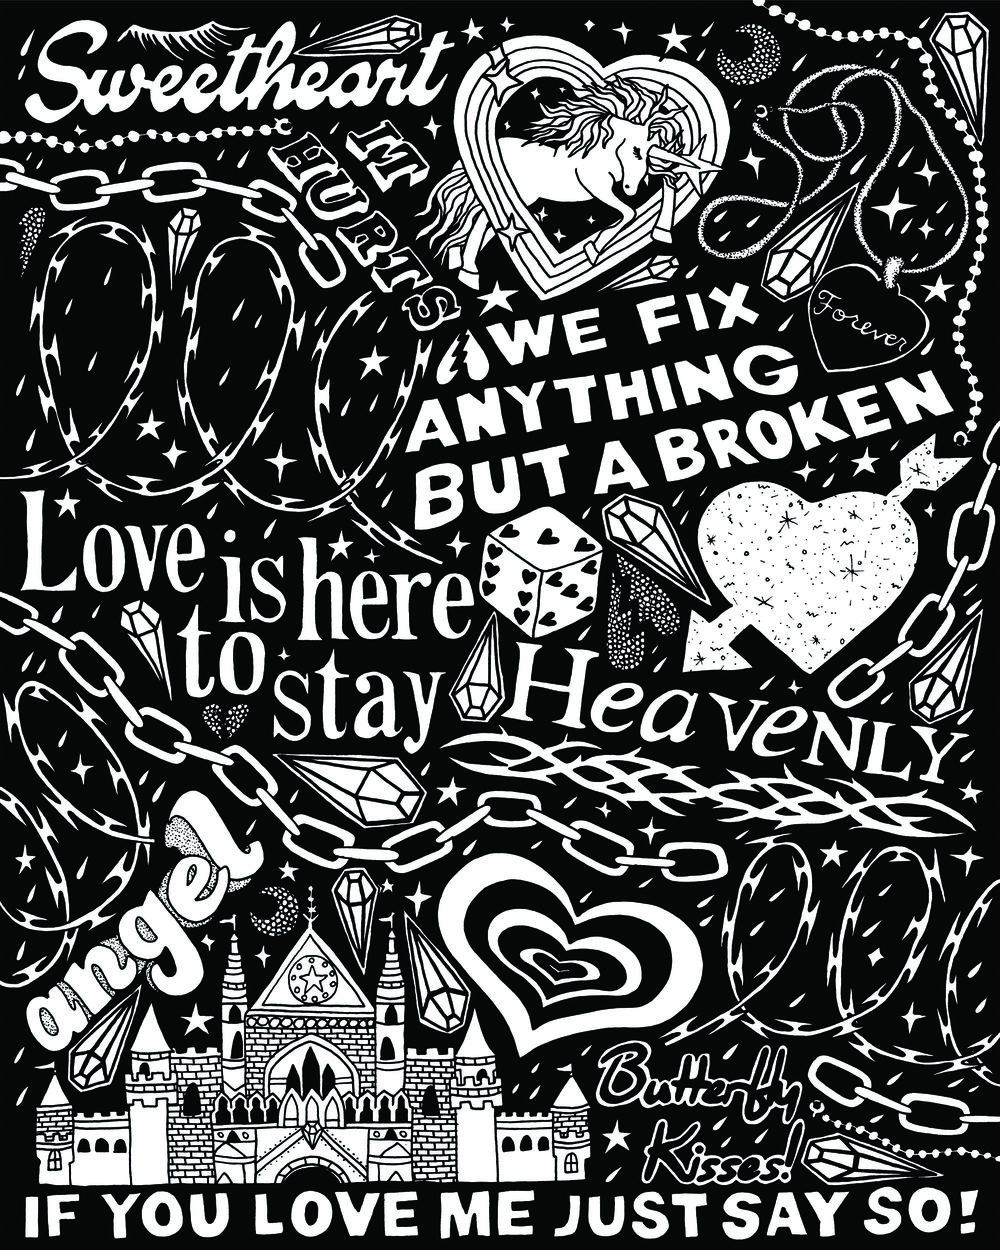 club_heat_poster_16x20_bw_1.jpg